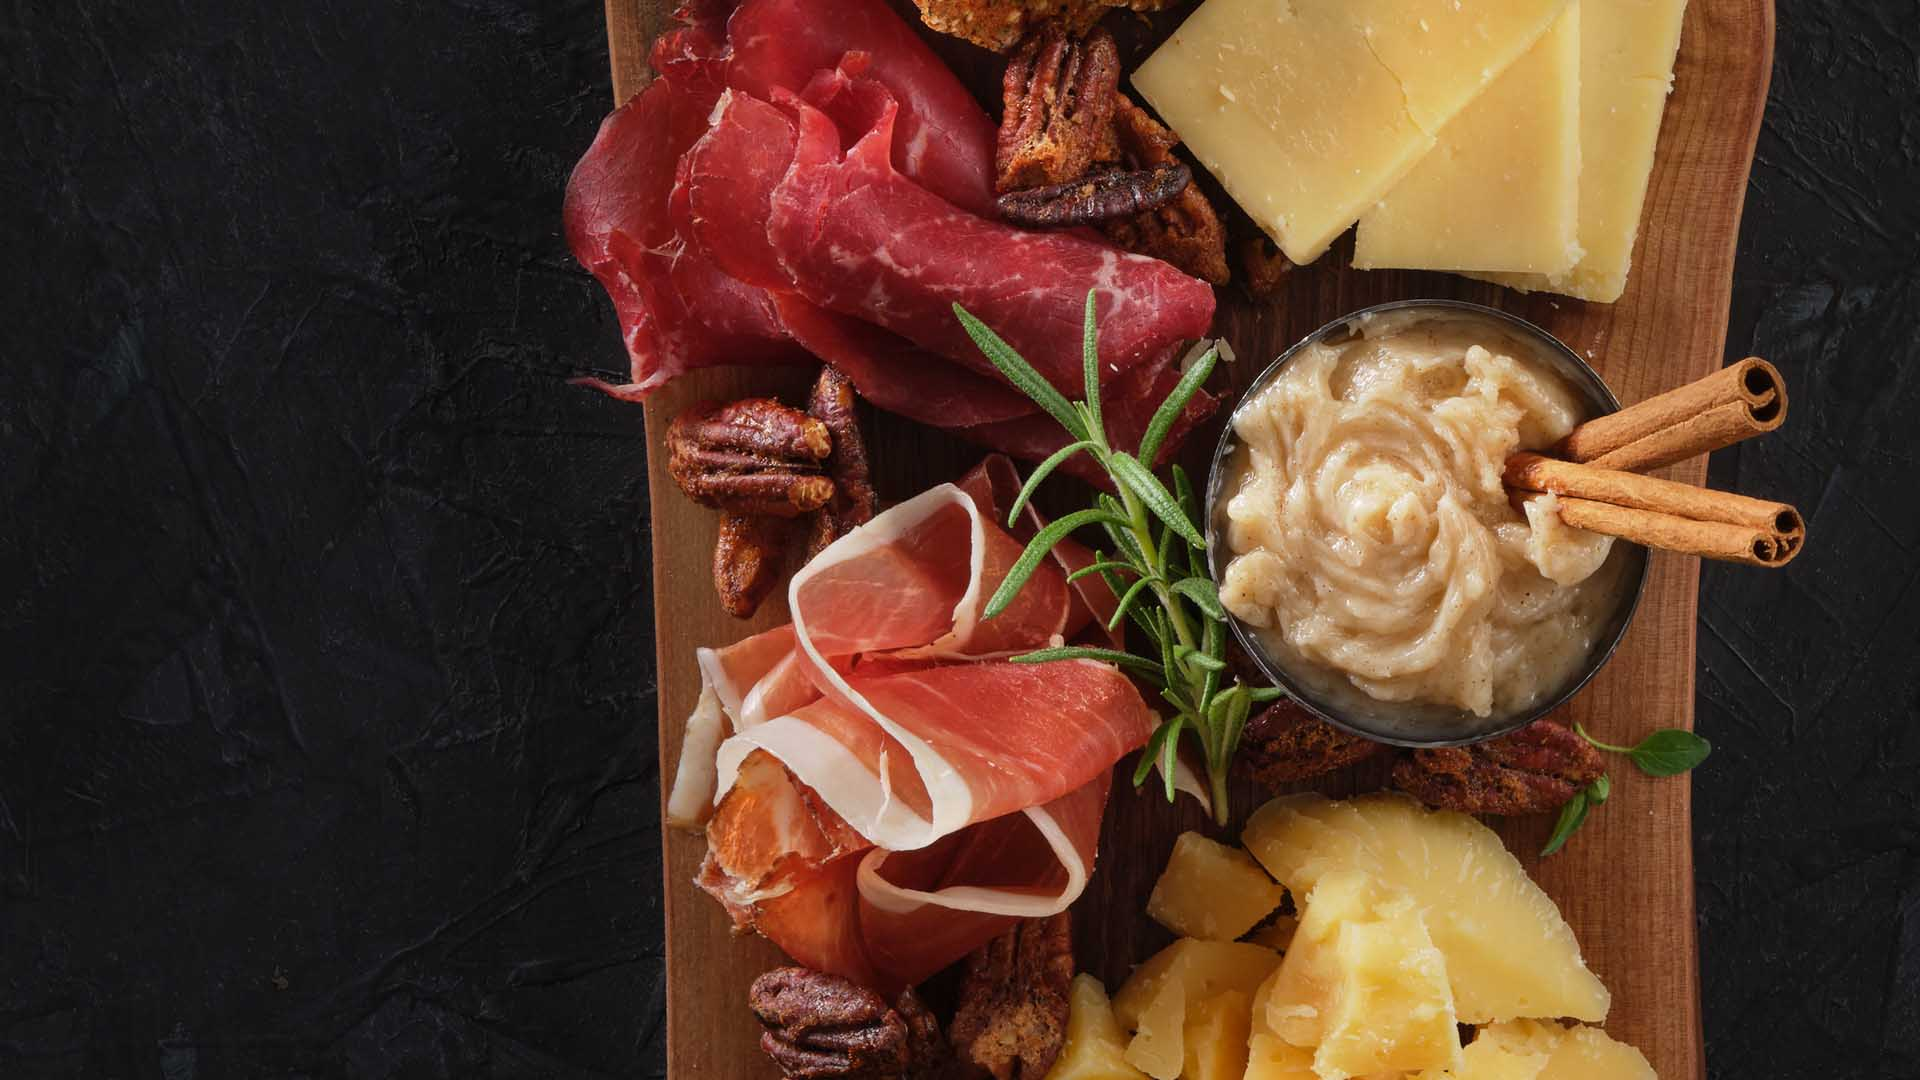 Overhead shot of harvest board featuring prosciutto, dips and other board elements.